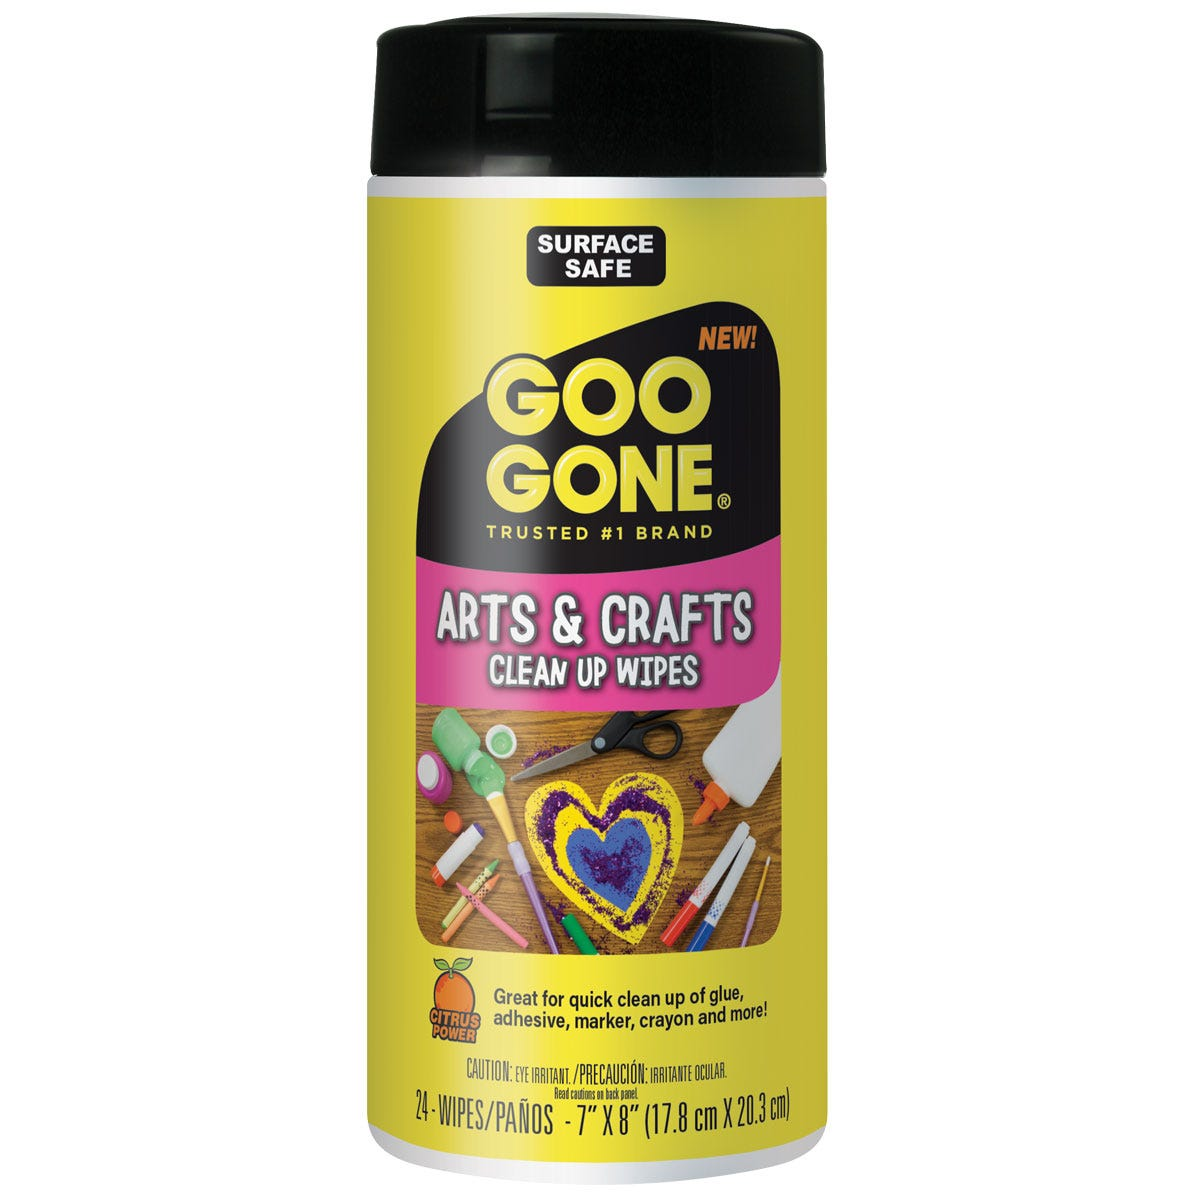 https://googone.com/media/catalog/product/a/r/arts-_-craft-adhesive-wipes_front_2.jpg